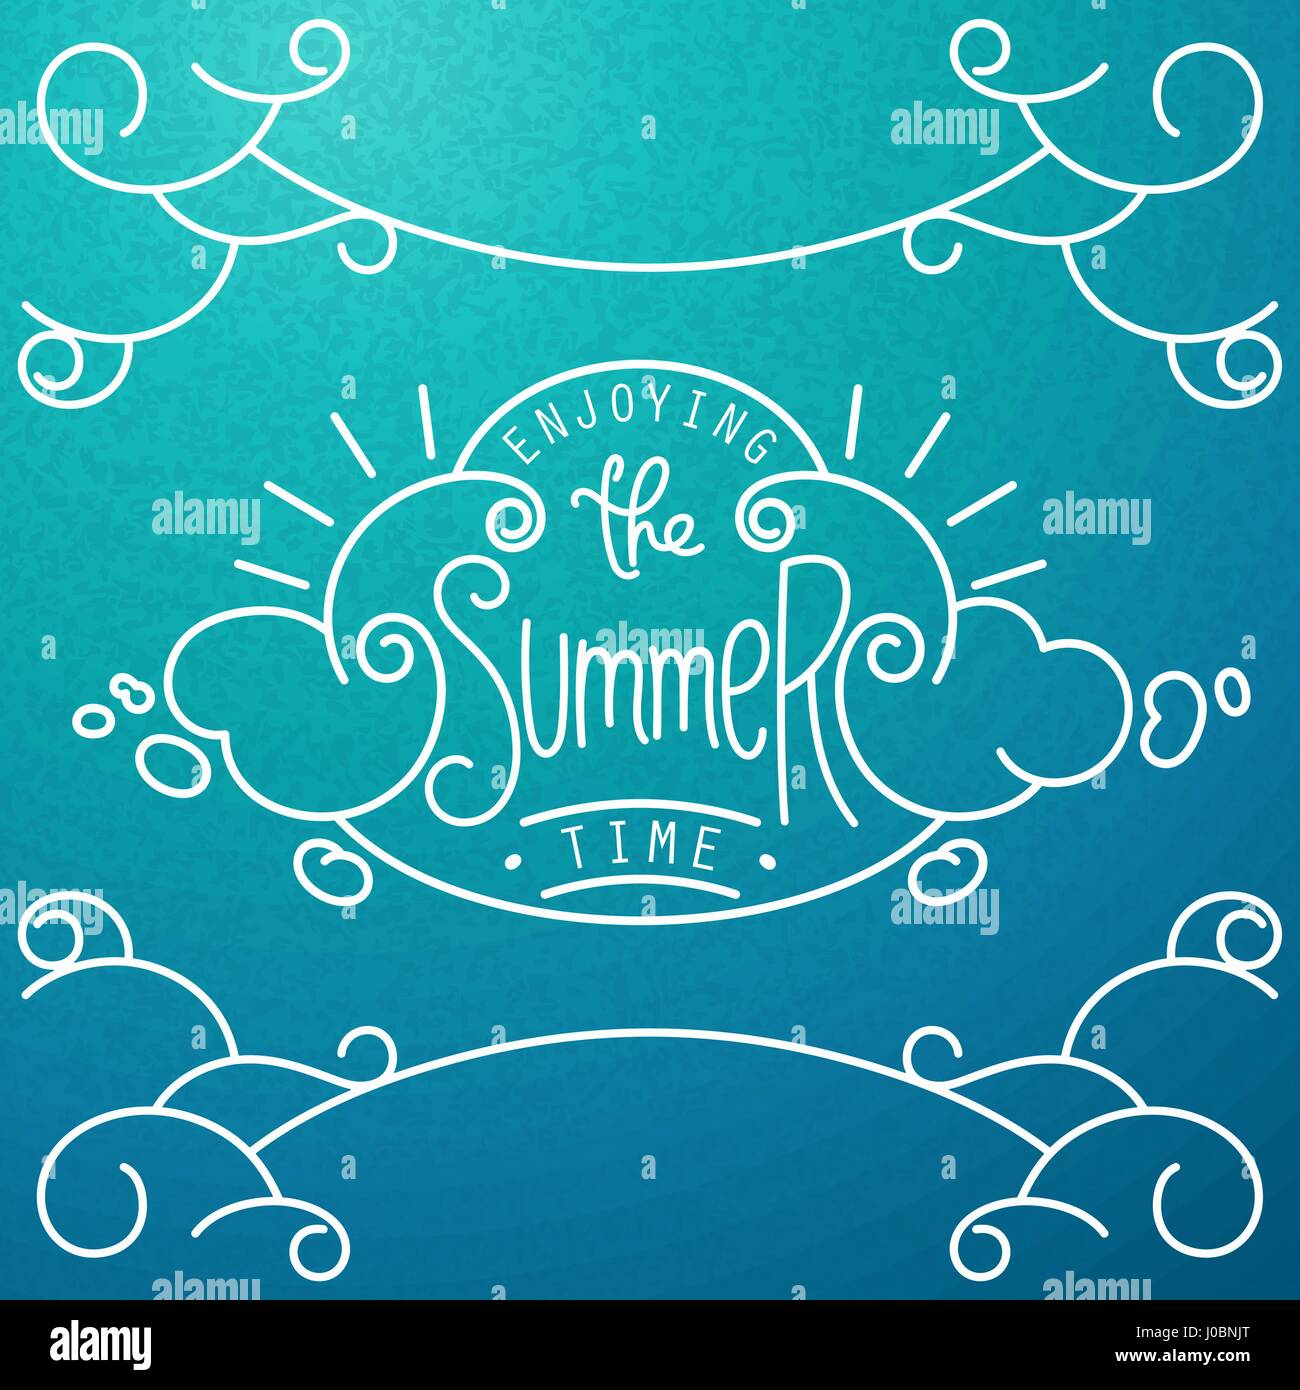 Enjoying the Summer time. Hand drawn lineart composition and lettering for decoration.  Stylized sky with clouds. - Stock Image